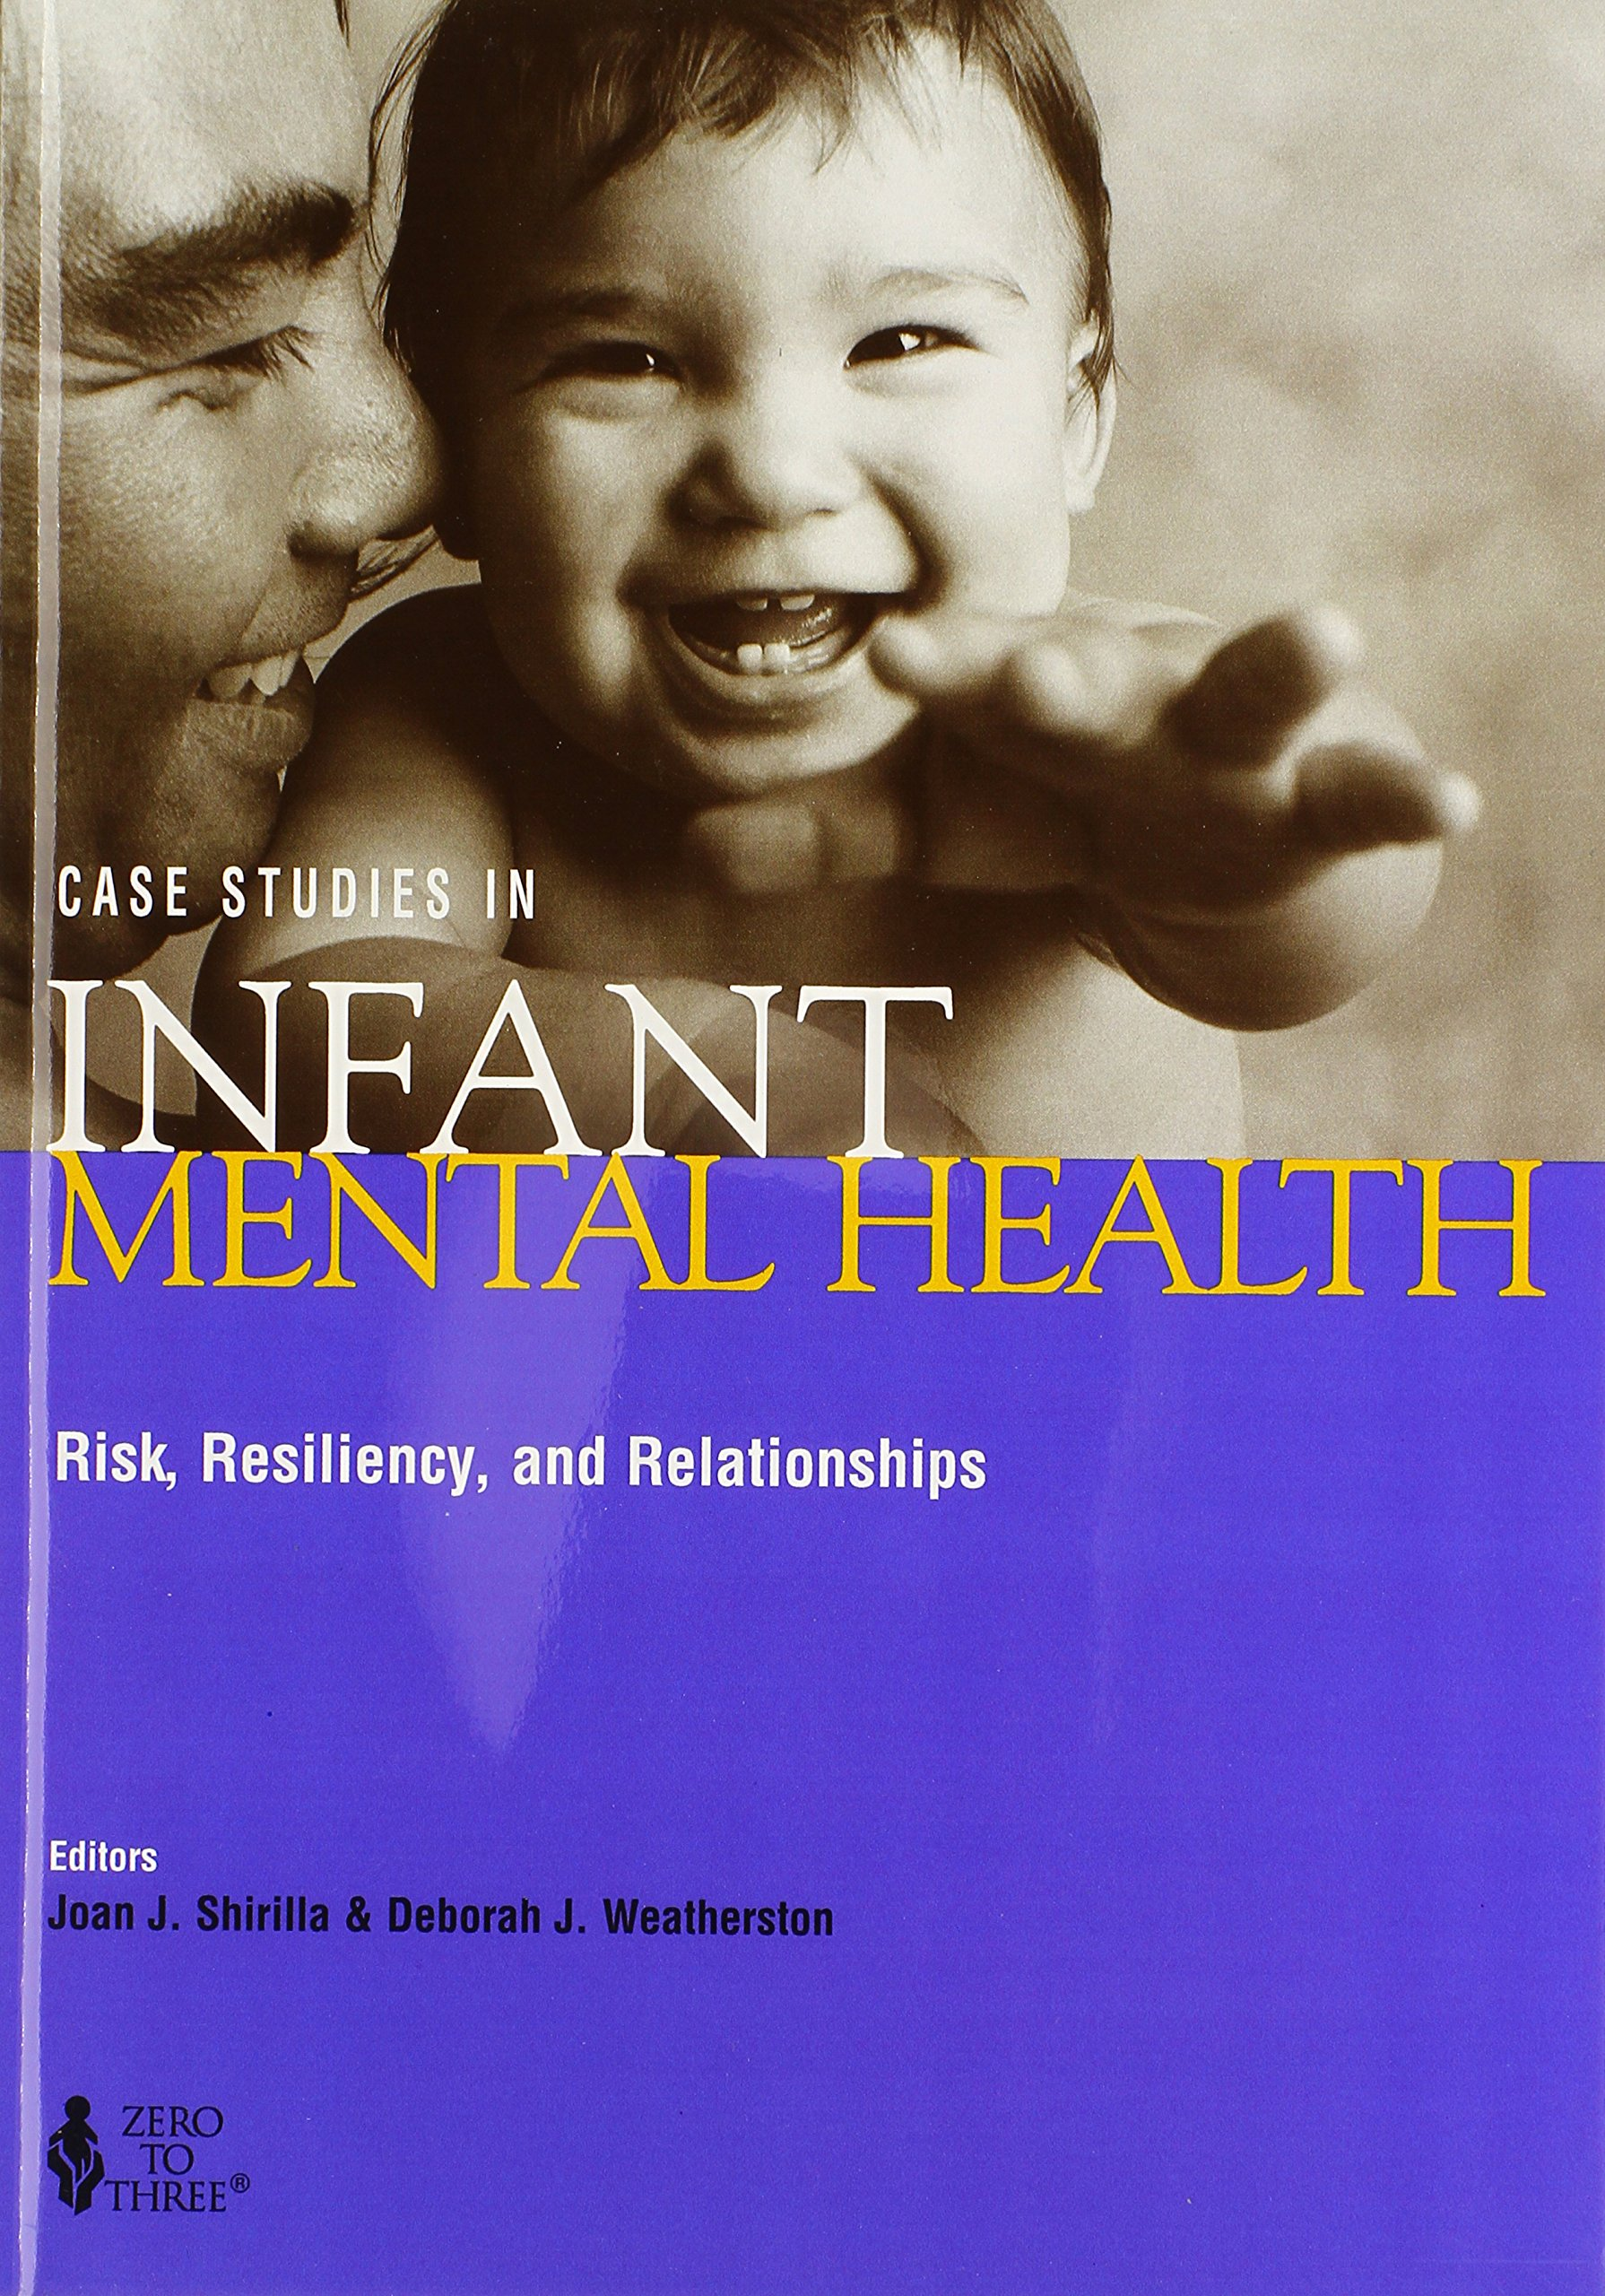 Case Studies in Infant Mental Health: Risk, Resiliency, and Relationships pdf